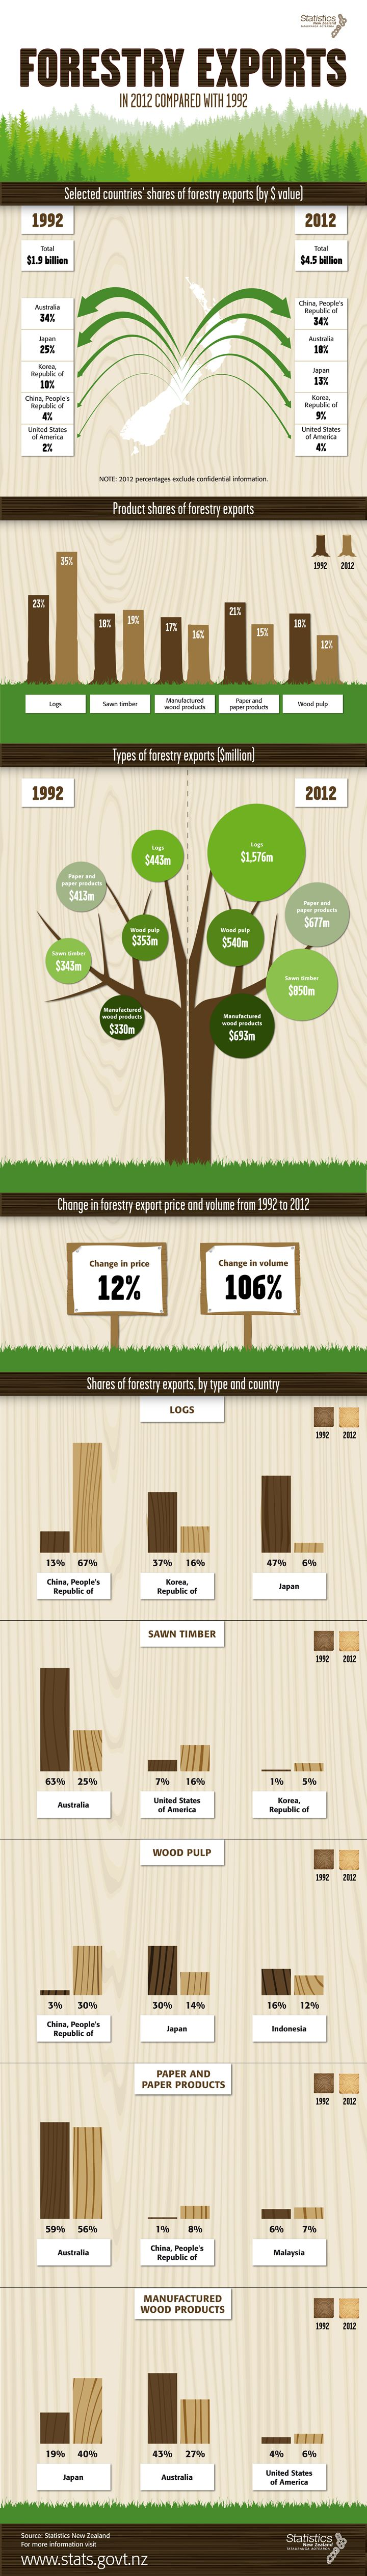 Forestry exports in 2012 compared with 1992. Published 13 January 2014.